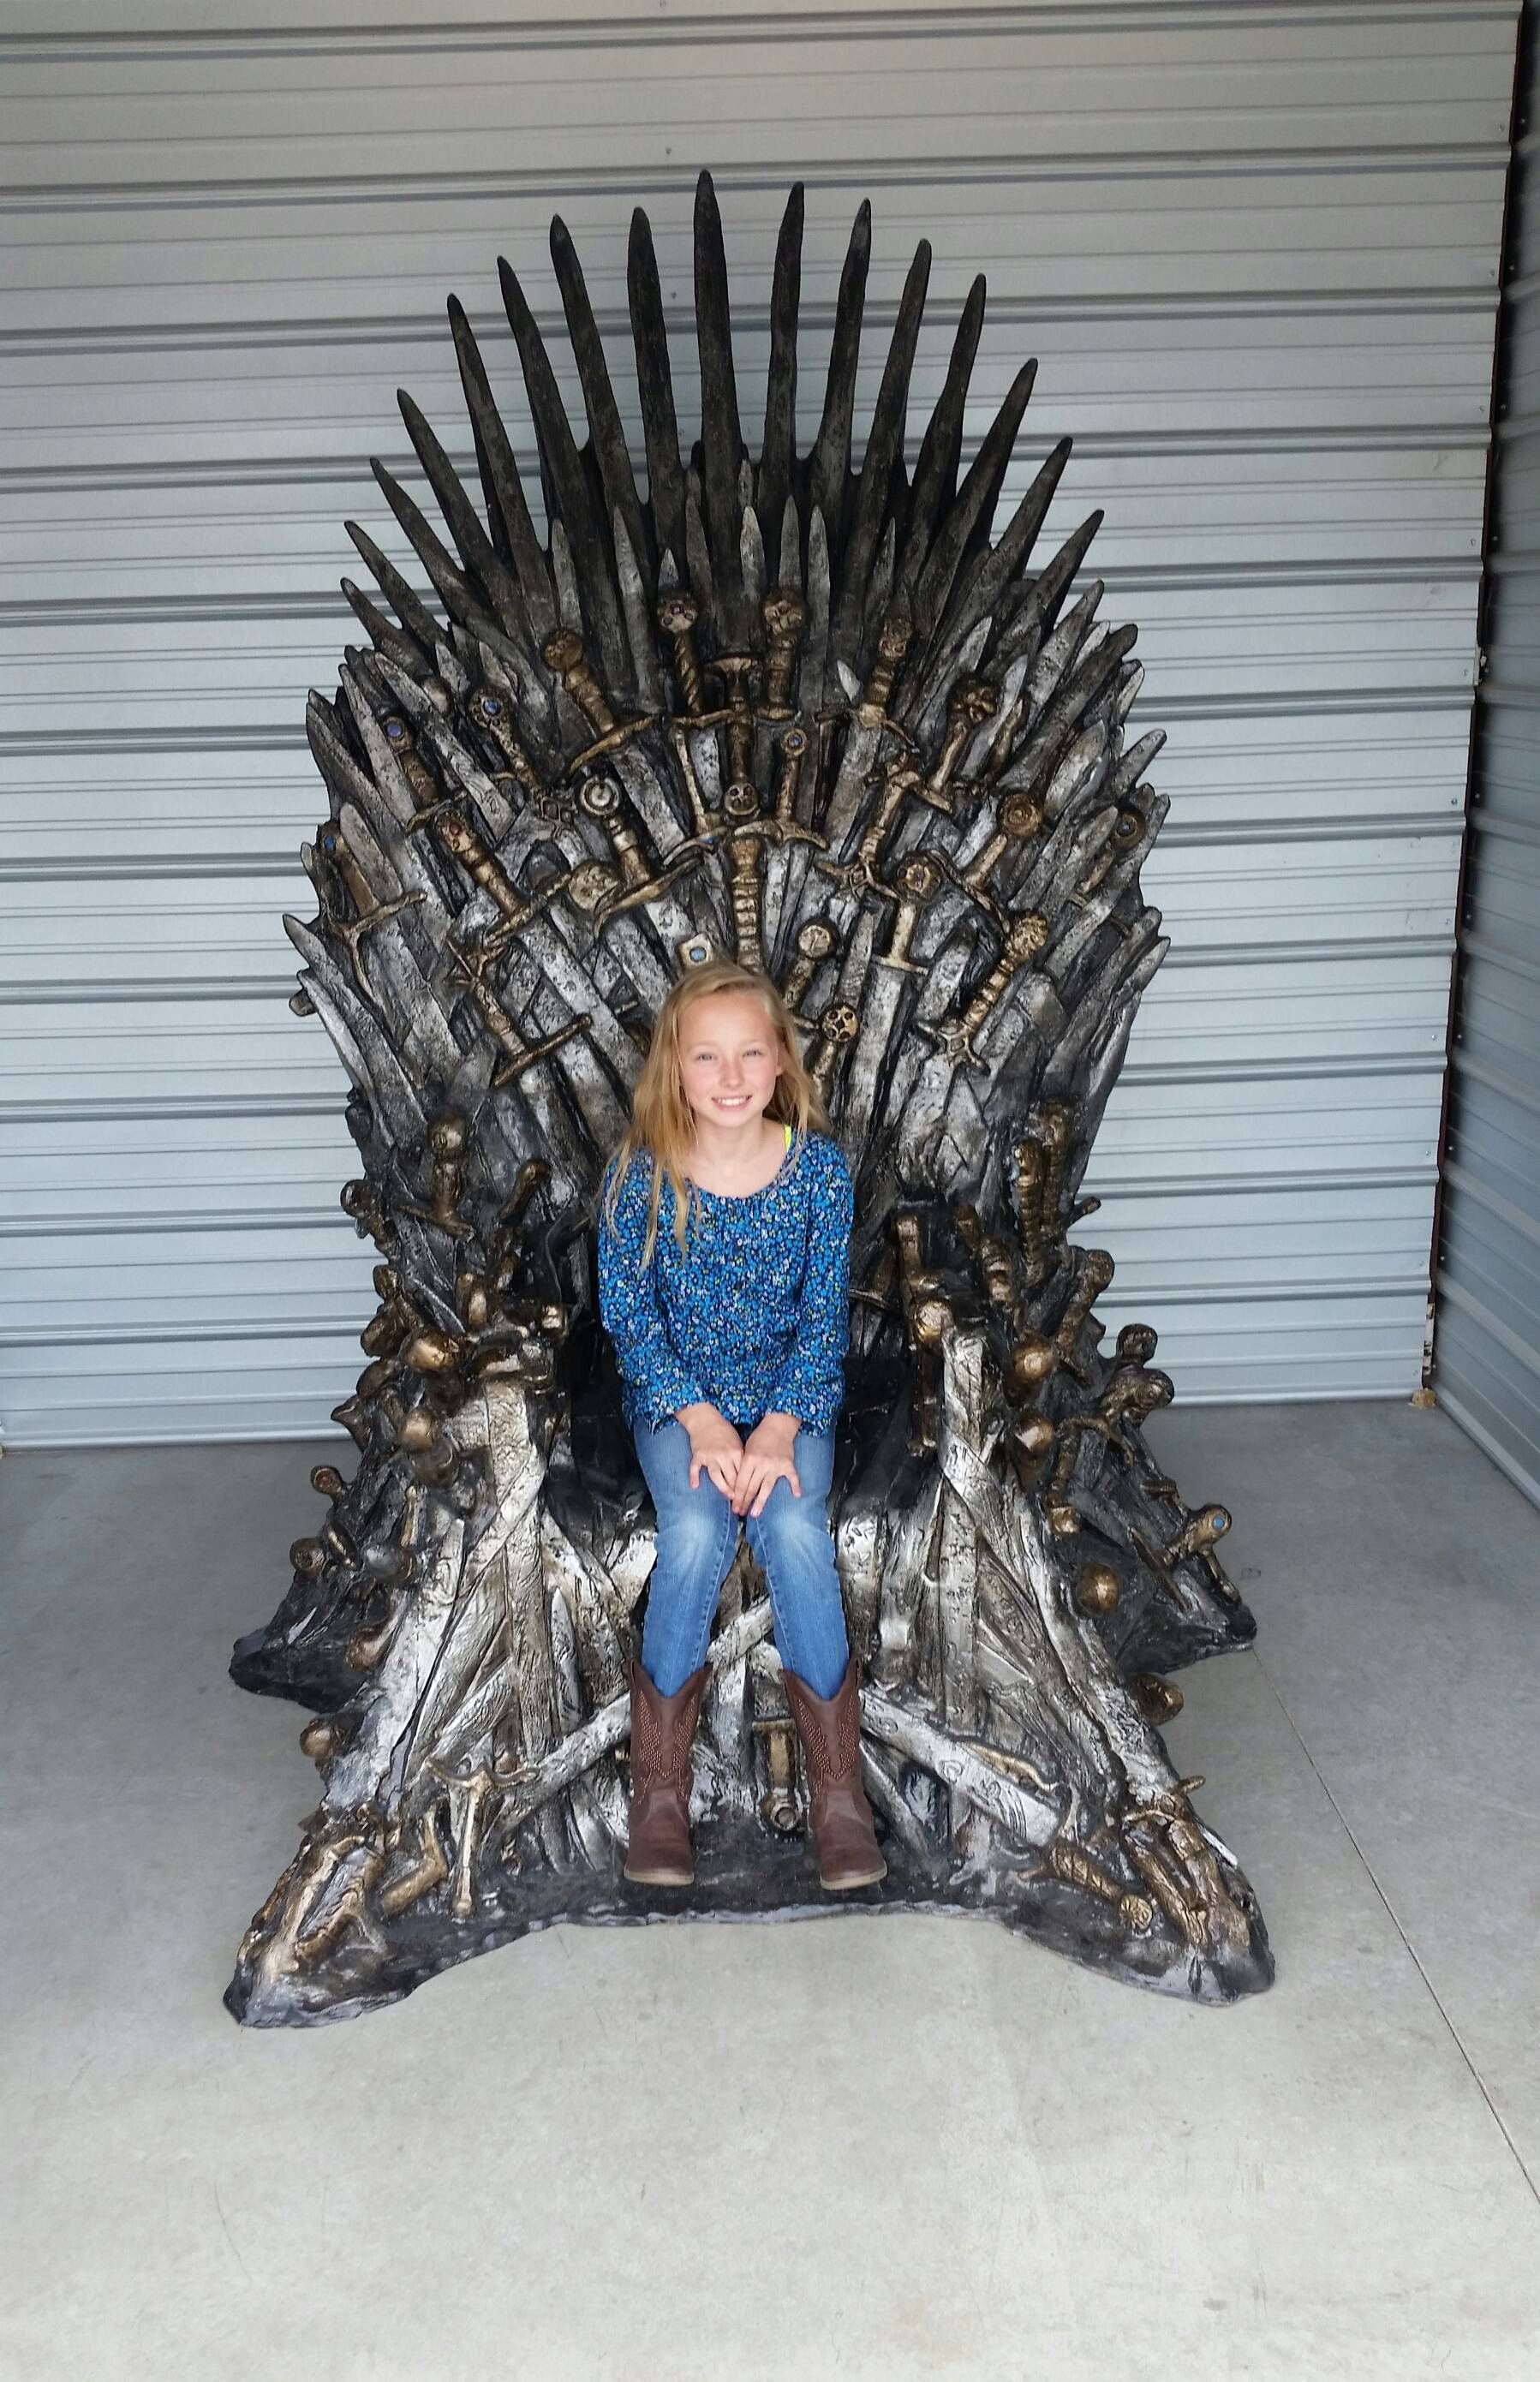 Life size replica of the iron throne imgur movies tv for Buy iron throne chair